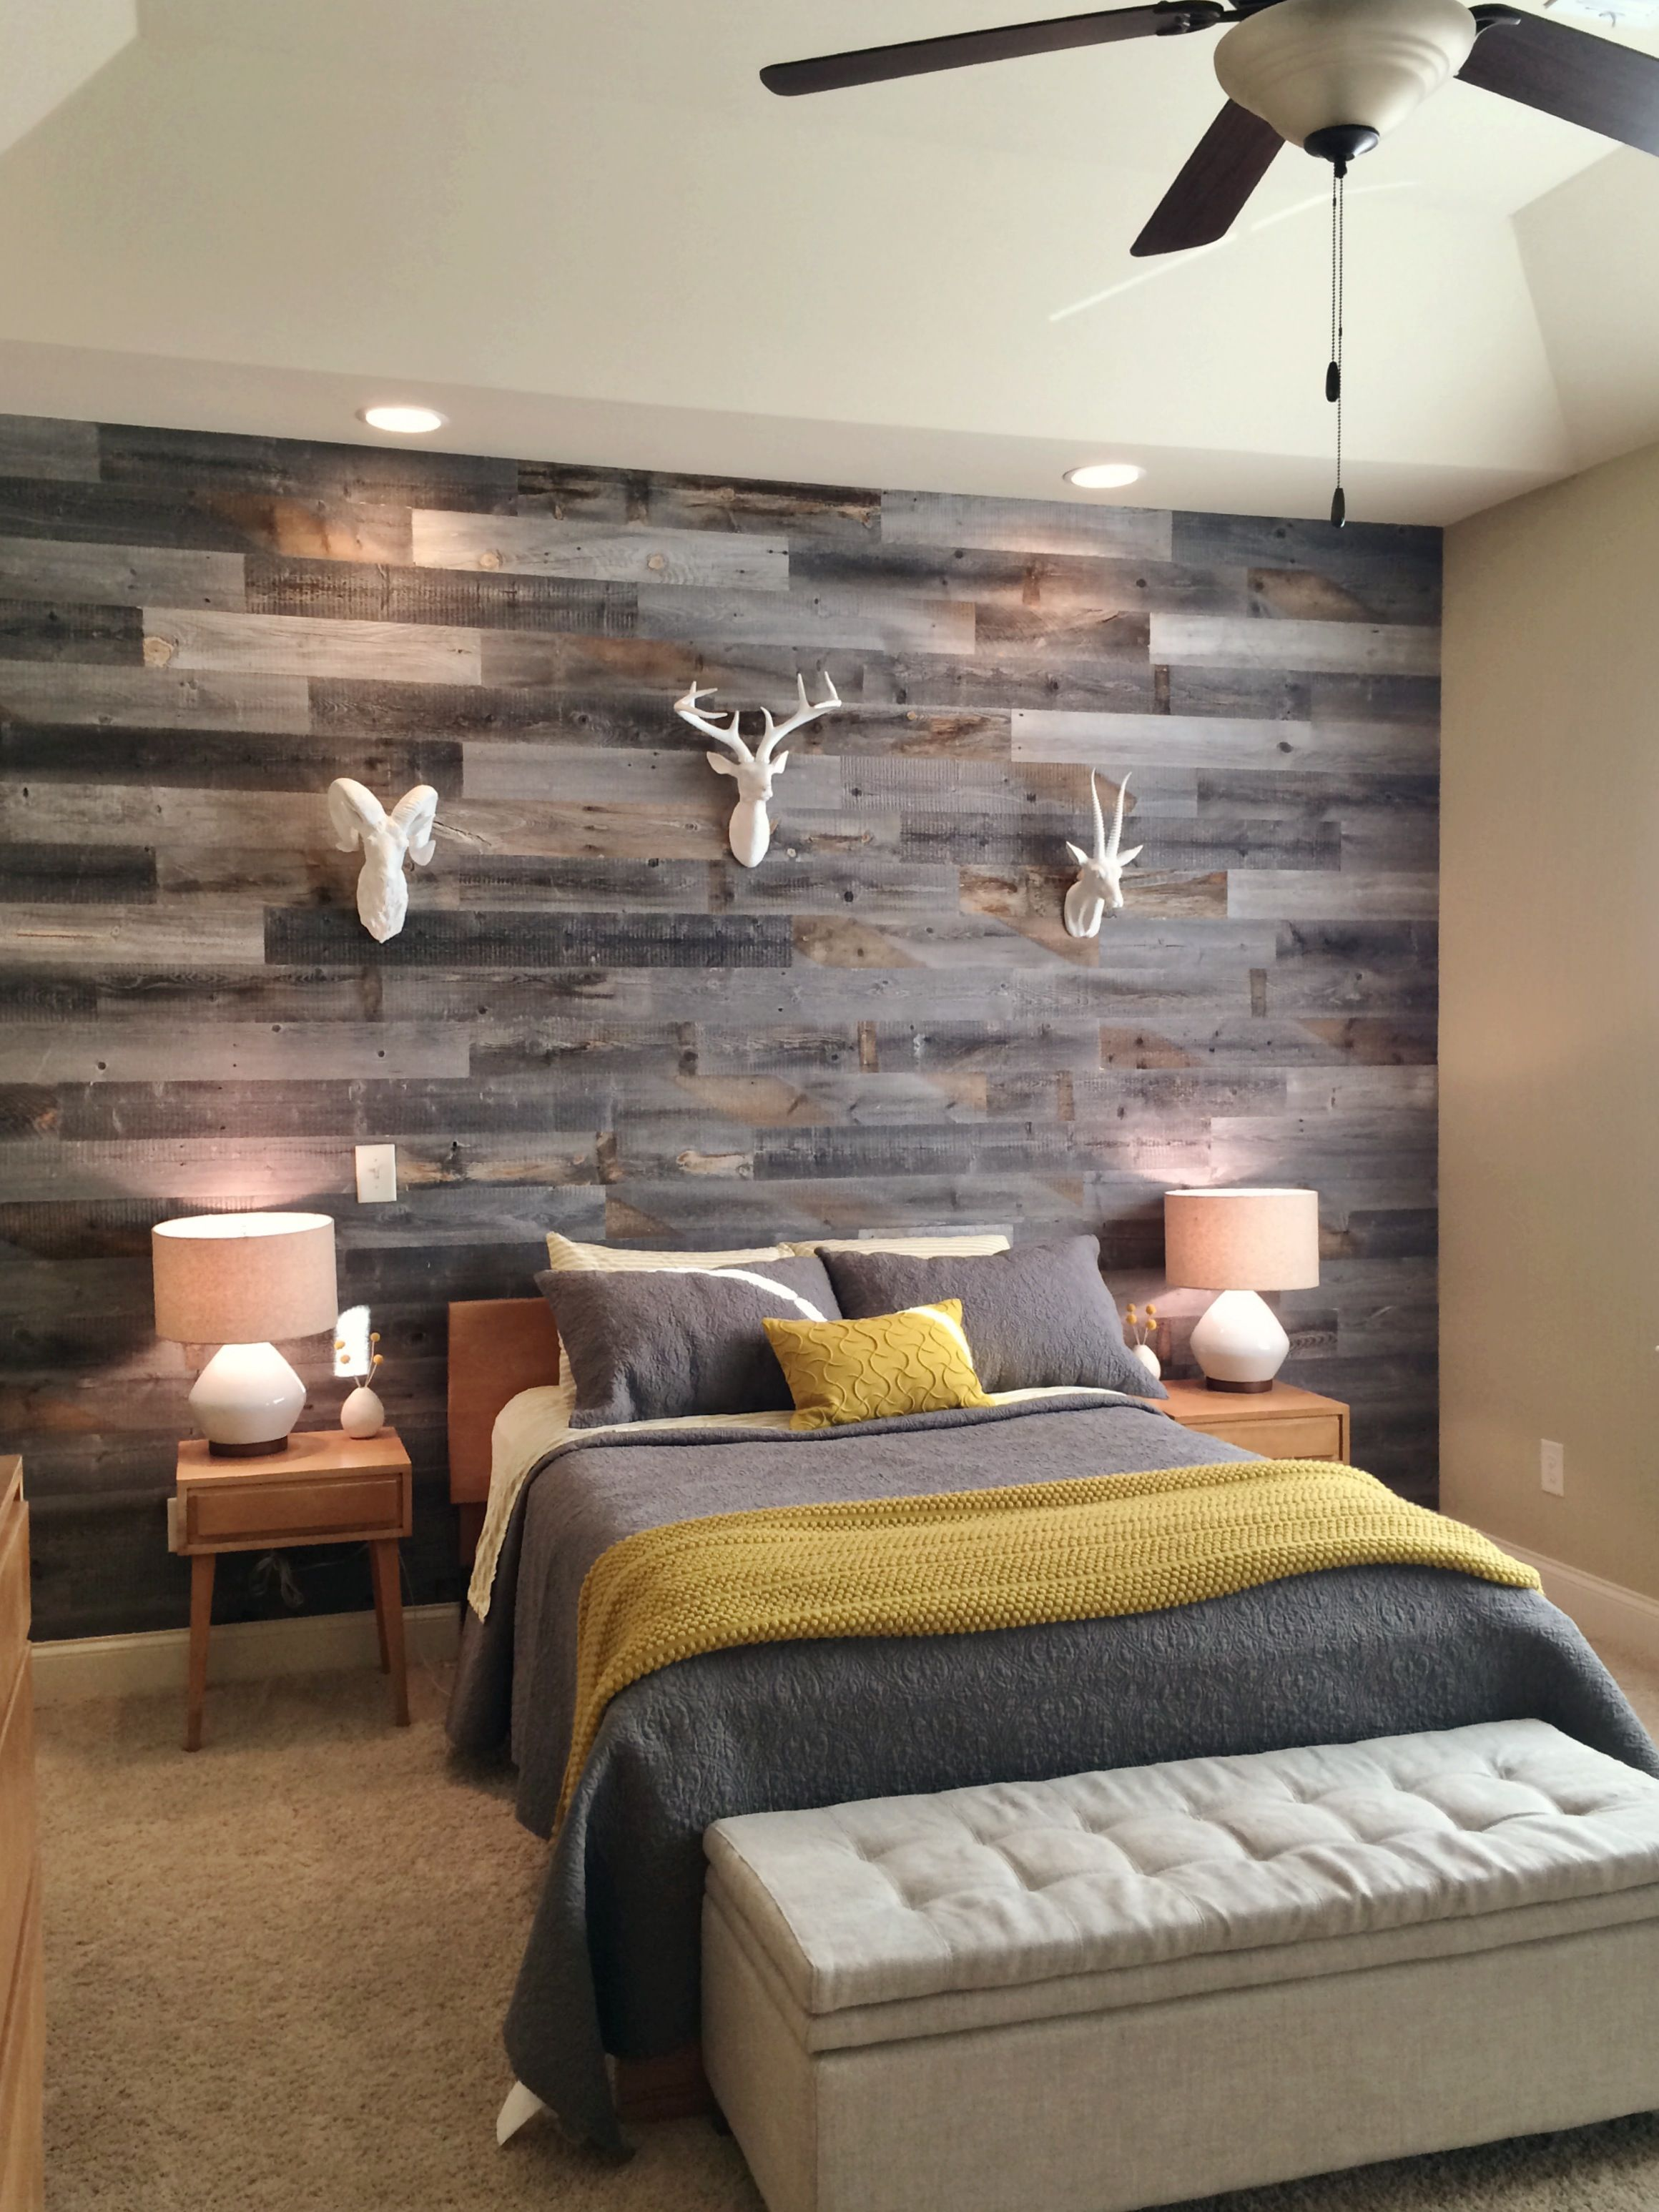 Rustic Walls Interior Reclaimed Weathered Wood In 2019 Walls Interior Design Diy